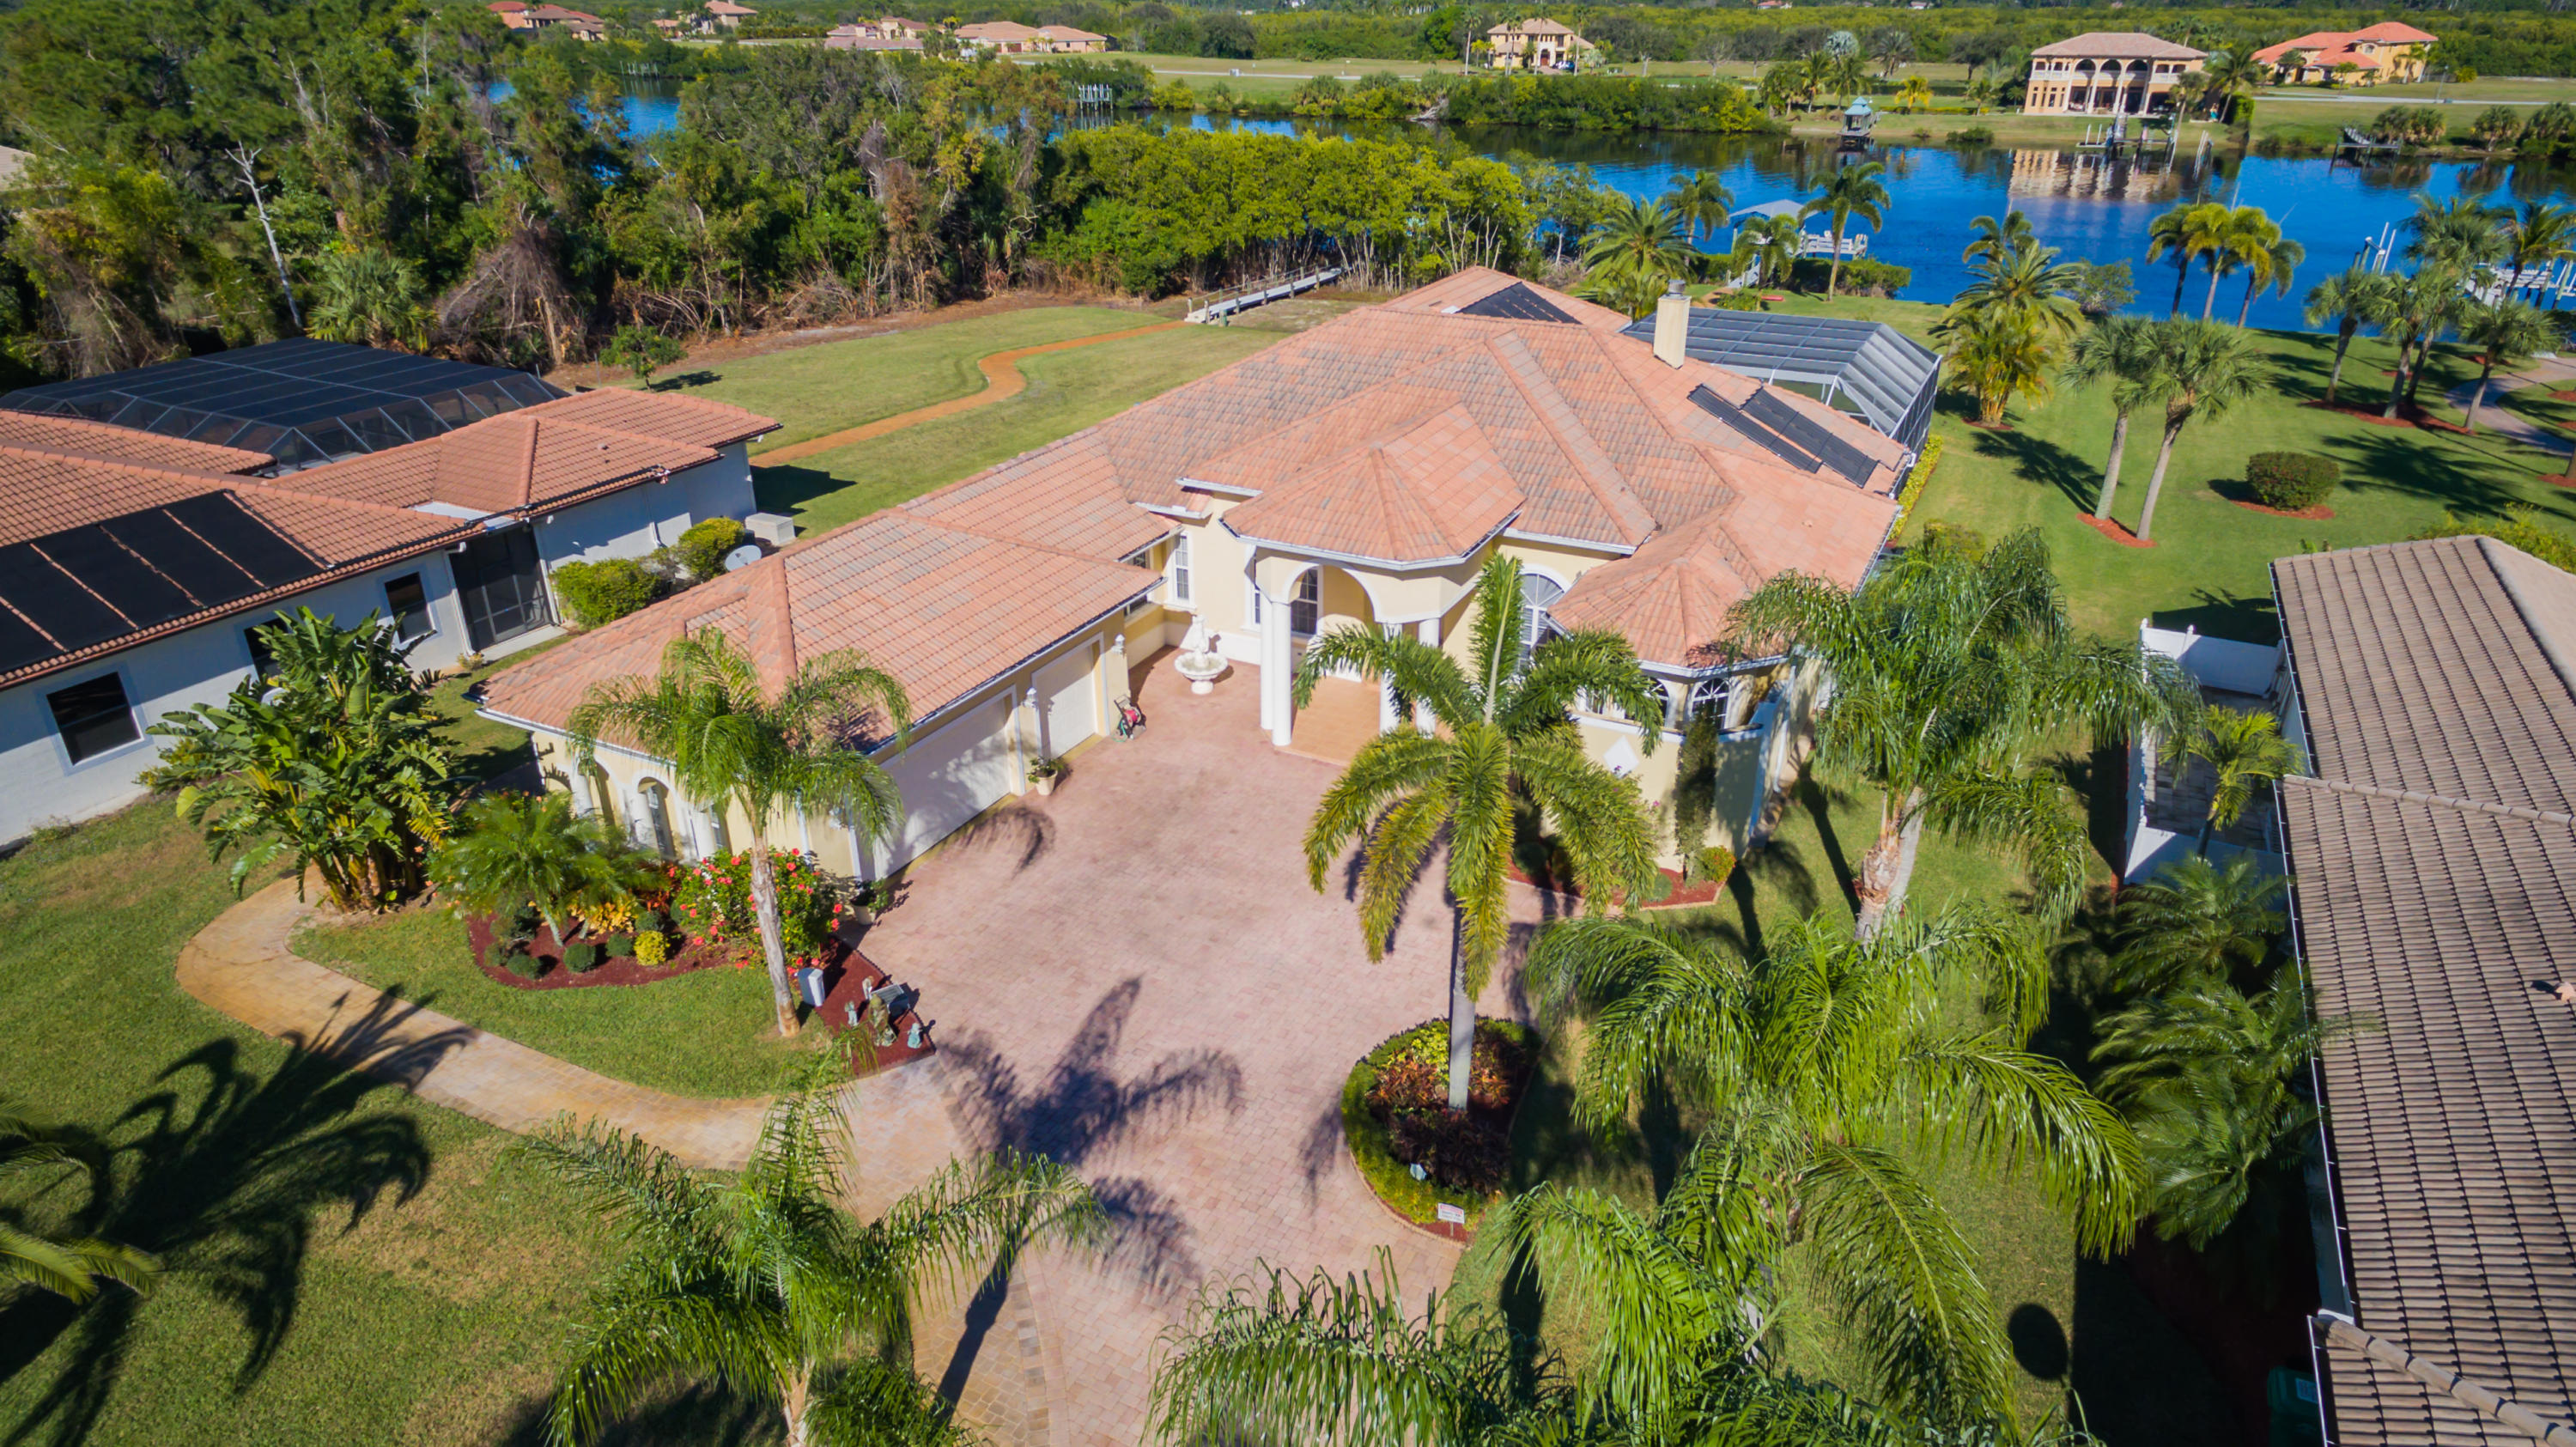 New listing in the gated waterfront community of Vikings Lookout.  This luxurious home is located on an acre off the North Fork of the St. Lucie River and features 6 bedrooms, 4 bathrooms and a 3 car garage with over 4,000 square feet under air!  This custom CBS home has plenty of room for a large family, entertaining, and hosting guests.  The large kitchen and pantry make it easy to prepare and serve meals, whether you are sitting at the counter bar, the kitchen nook with pool and river views, or the formal dining room.  Enjoy the sun and pool from the large screened pool which features an outdoor kitchen and plenty of seating areas.  Swim year round with three heat sources for the pool and spa!   Water features include a deep-water dock, boat lift, and the boat is available for purchase.